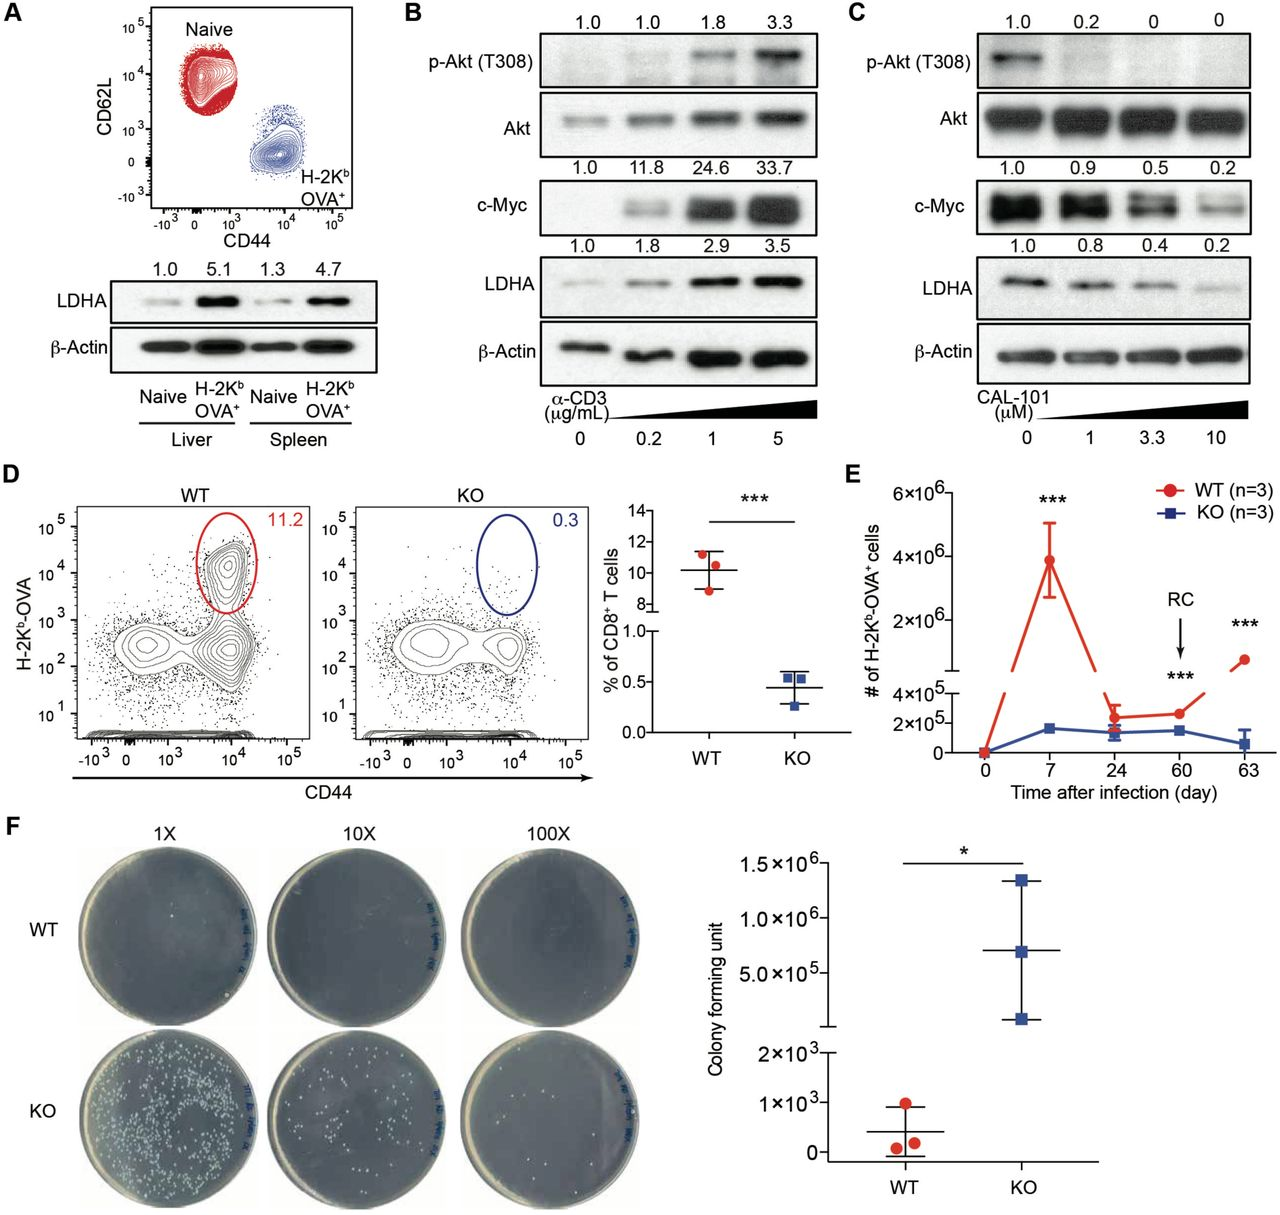 Schematics of cell sorting and cell culture, and characterization of anti-CD3-induced TCR proximal signaling in the absence or presence of PI3K inhibitor ( A ) A schematic of flow cytometry sorting strategy for naïve and H-2K b -OVA + CD8 + T cells from wild-type mice infected with LM-OVA for 7 days. ( B ) A schematic of in vitro CD8 + T cell culture with various doses of anti-CD3 and the PI3K inhibitor, CAL-101 in the presence of 2 μg/ml anti-CD28, and 100 U/ml IL-2. ( C ) Naïve CD8 + T cells were stimulated with increasing doses of anti-CD3 in the presence of 2 μg/ml anti-CD28, and 100 U/ml IL-2 for 24 hours. Cellular extracts were immunoblotted for p-Zap70 (T319), Zap70, p-LAT (T191), LAT, and β-Actin. Normalized expression of p-Zap70 (T319) to Zap70 and p-LAT (T191) to LAT were marked. ( D ) Naïve CD8 + T cells were stimulated with 5 μg/ml anti-CD3, 2 μg/ml anti-CD28, and 100 U/ml IL-2 in the absence or presence of increasing doses of the PI3K inhibitor, CAL-101, for 24 hours. Cellular extracts were immunoblotted for p-Zap70 (T319), Zap70, p-LAT (T191), LAT, and β-Actin. Normalized expression of p-Zap70 (T319) to Zap70 and p-LAT (T191) to LAT were marked.